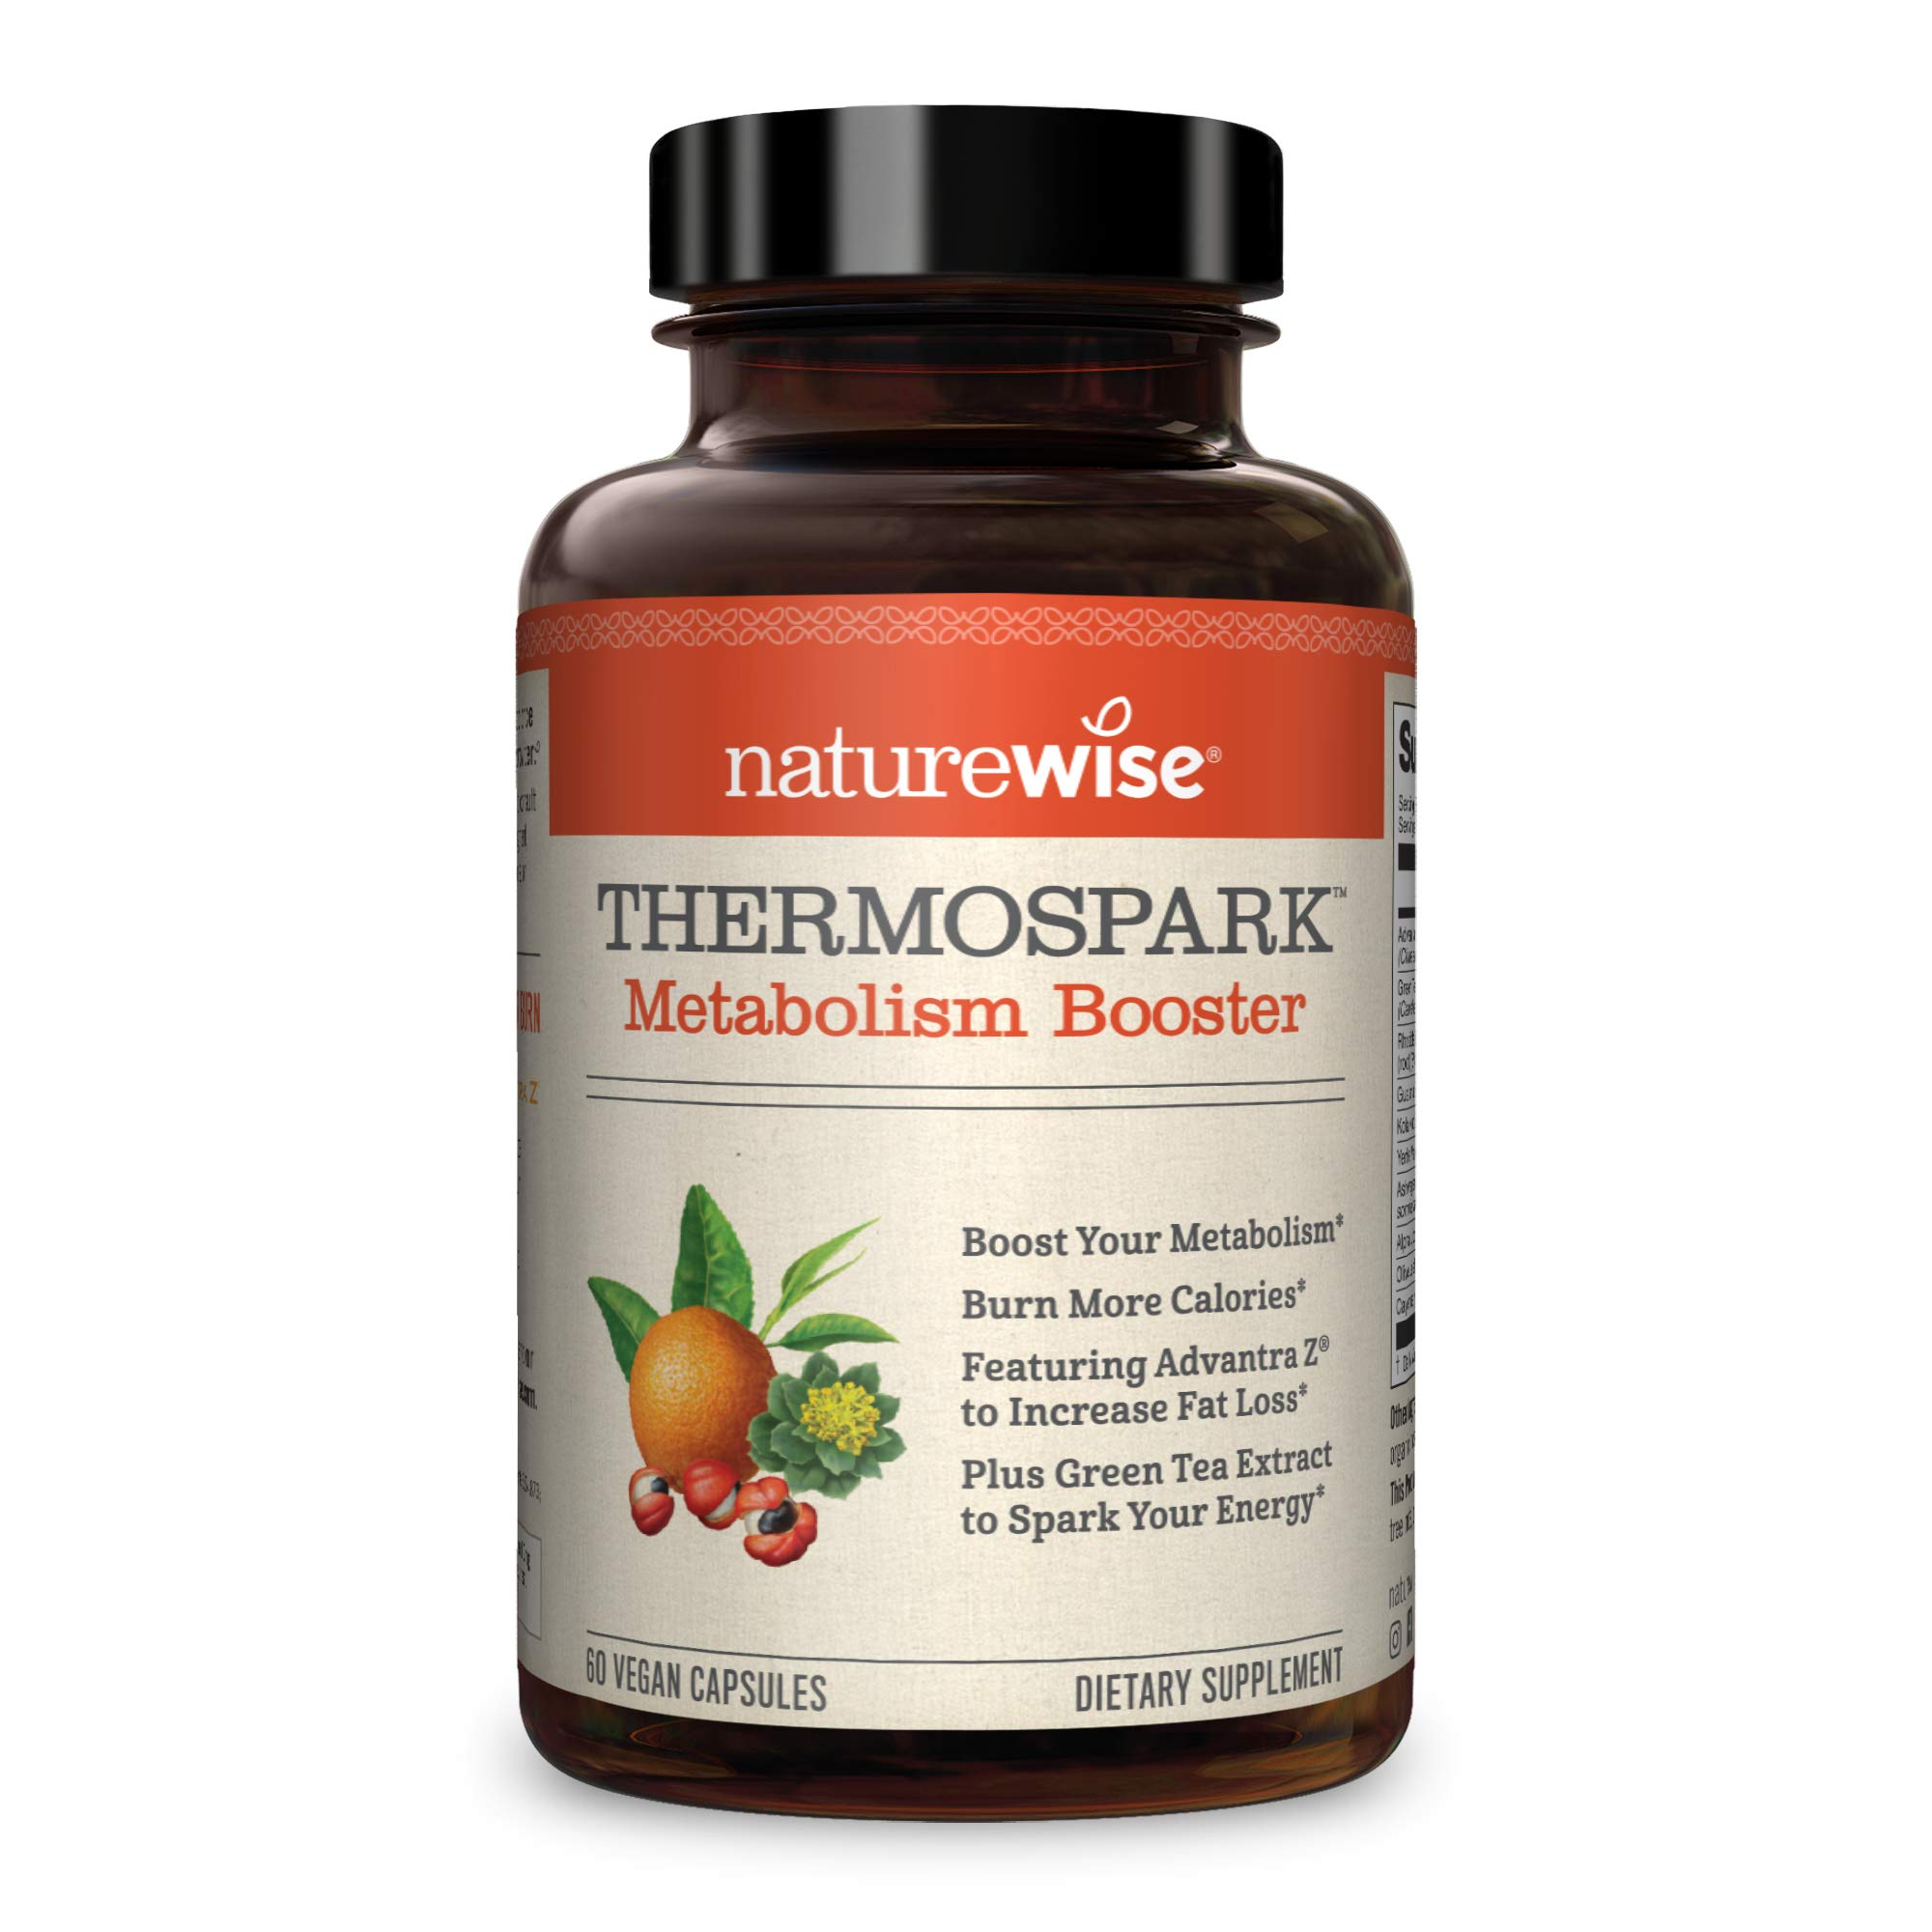 NatureWise Thermo Blend Metabolism Booster | Natural Thermogenic Fat Burner Appetite Suppressant & Weight Loss Pills for Men & Women | Green Tea Extract & Bitter Orange, Vegan, & Gluten Free [1 Month]